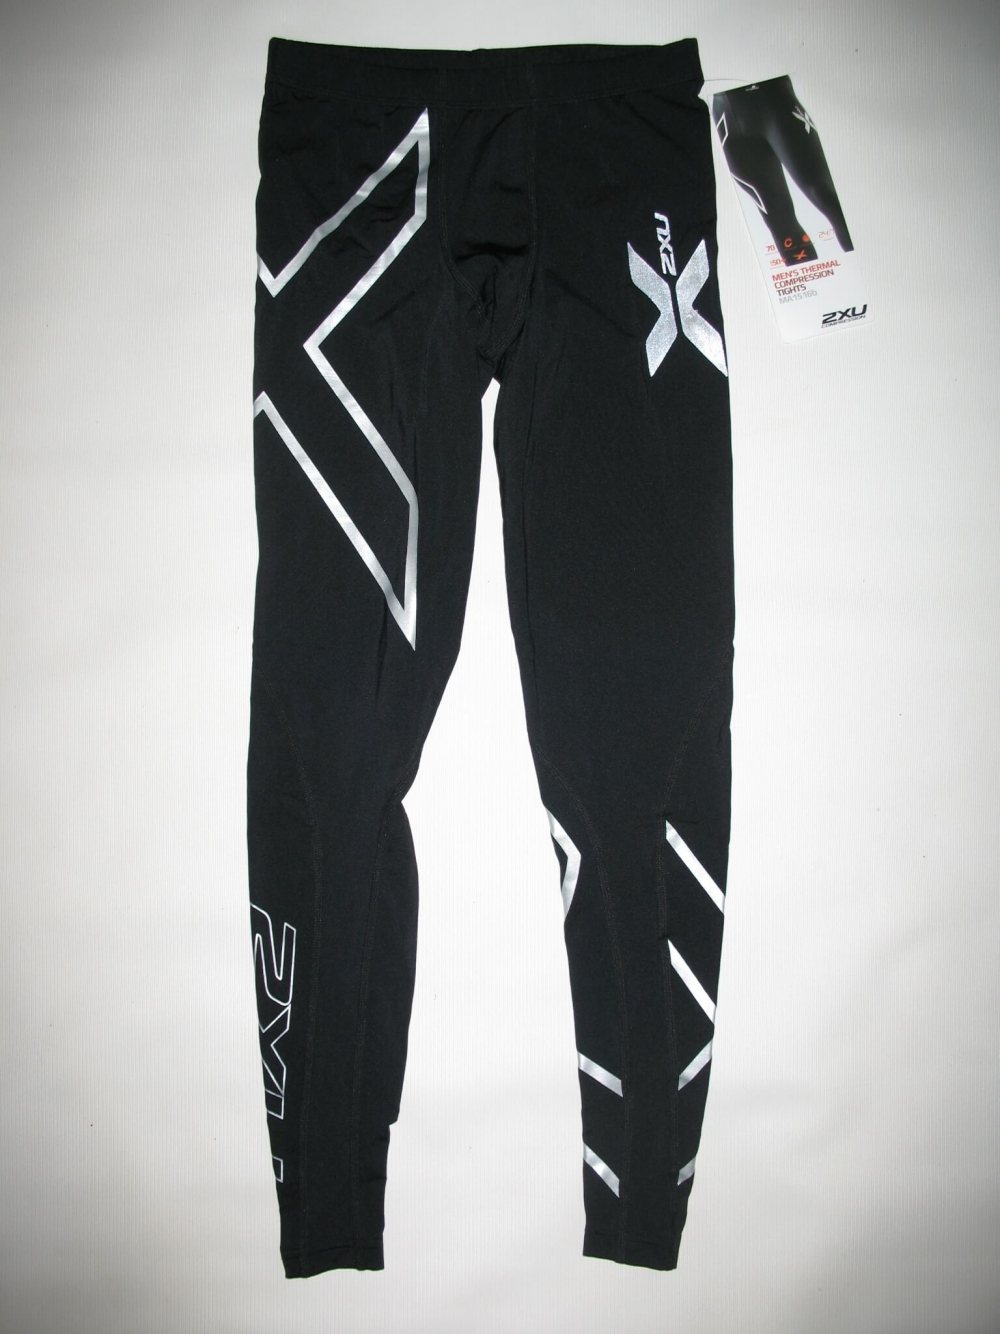 Штаны  2XU thermal compression tights unisex (размер XS) - 1